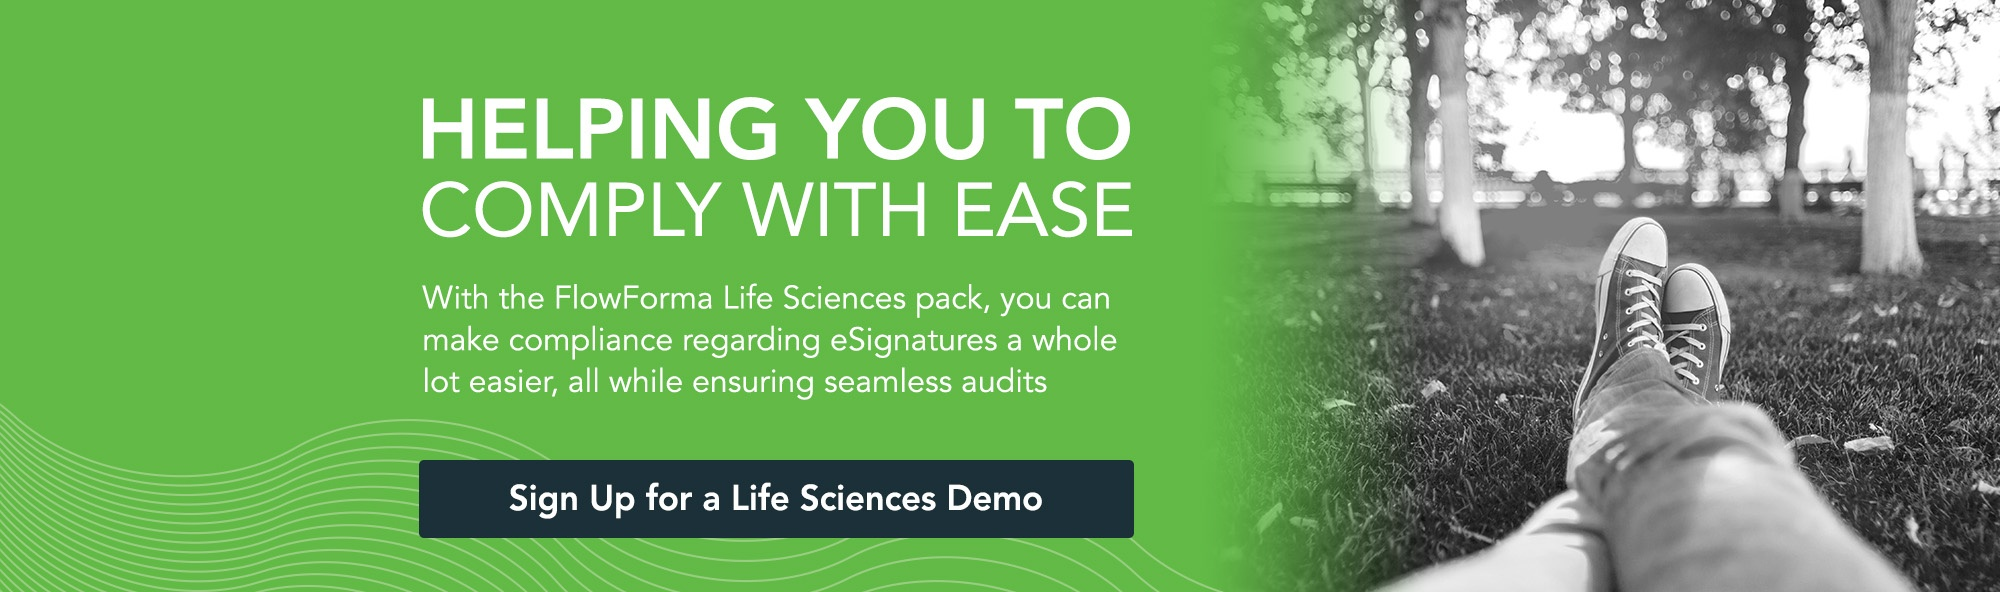 Easy and seamless audits with FlowForma Life Science Pack